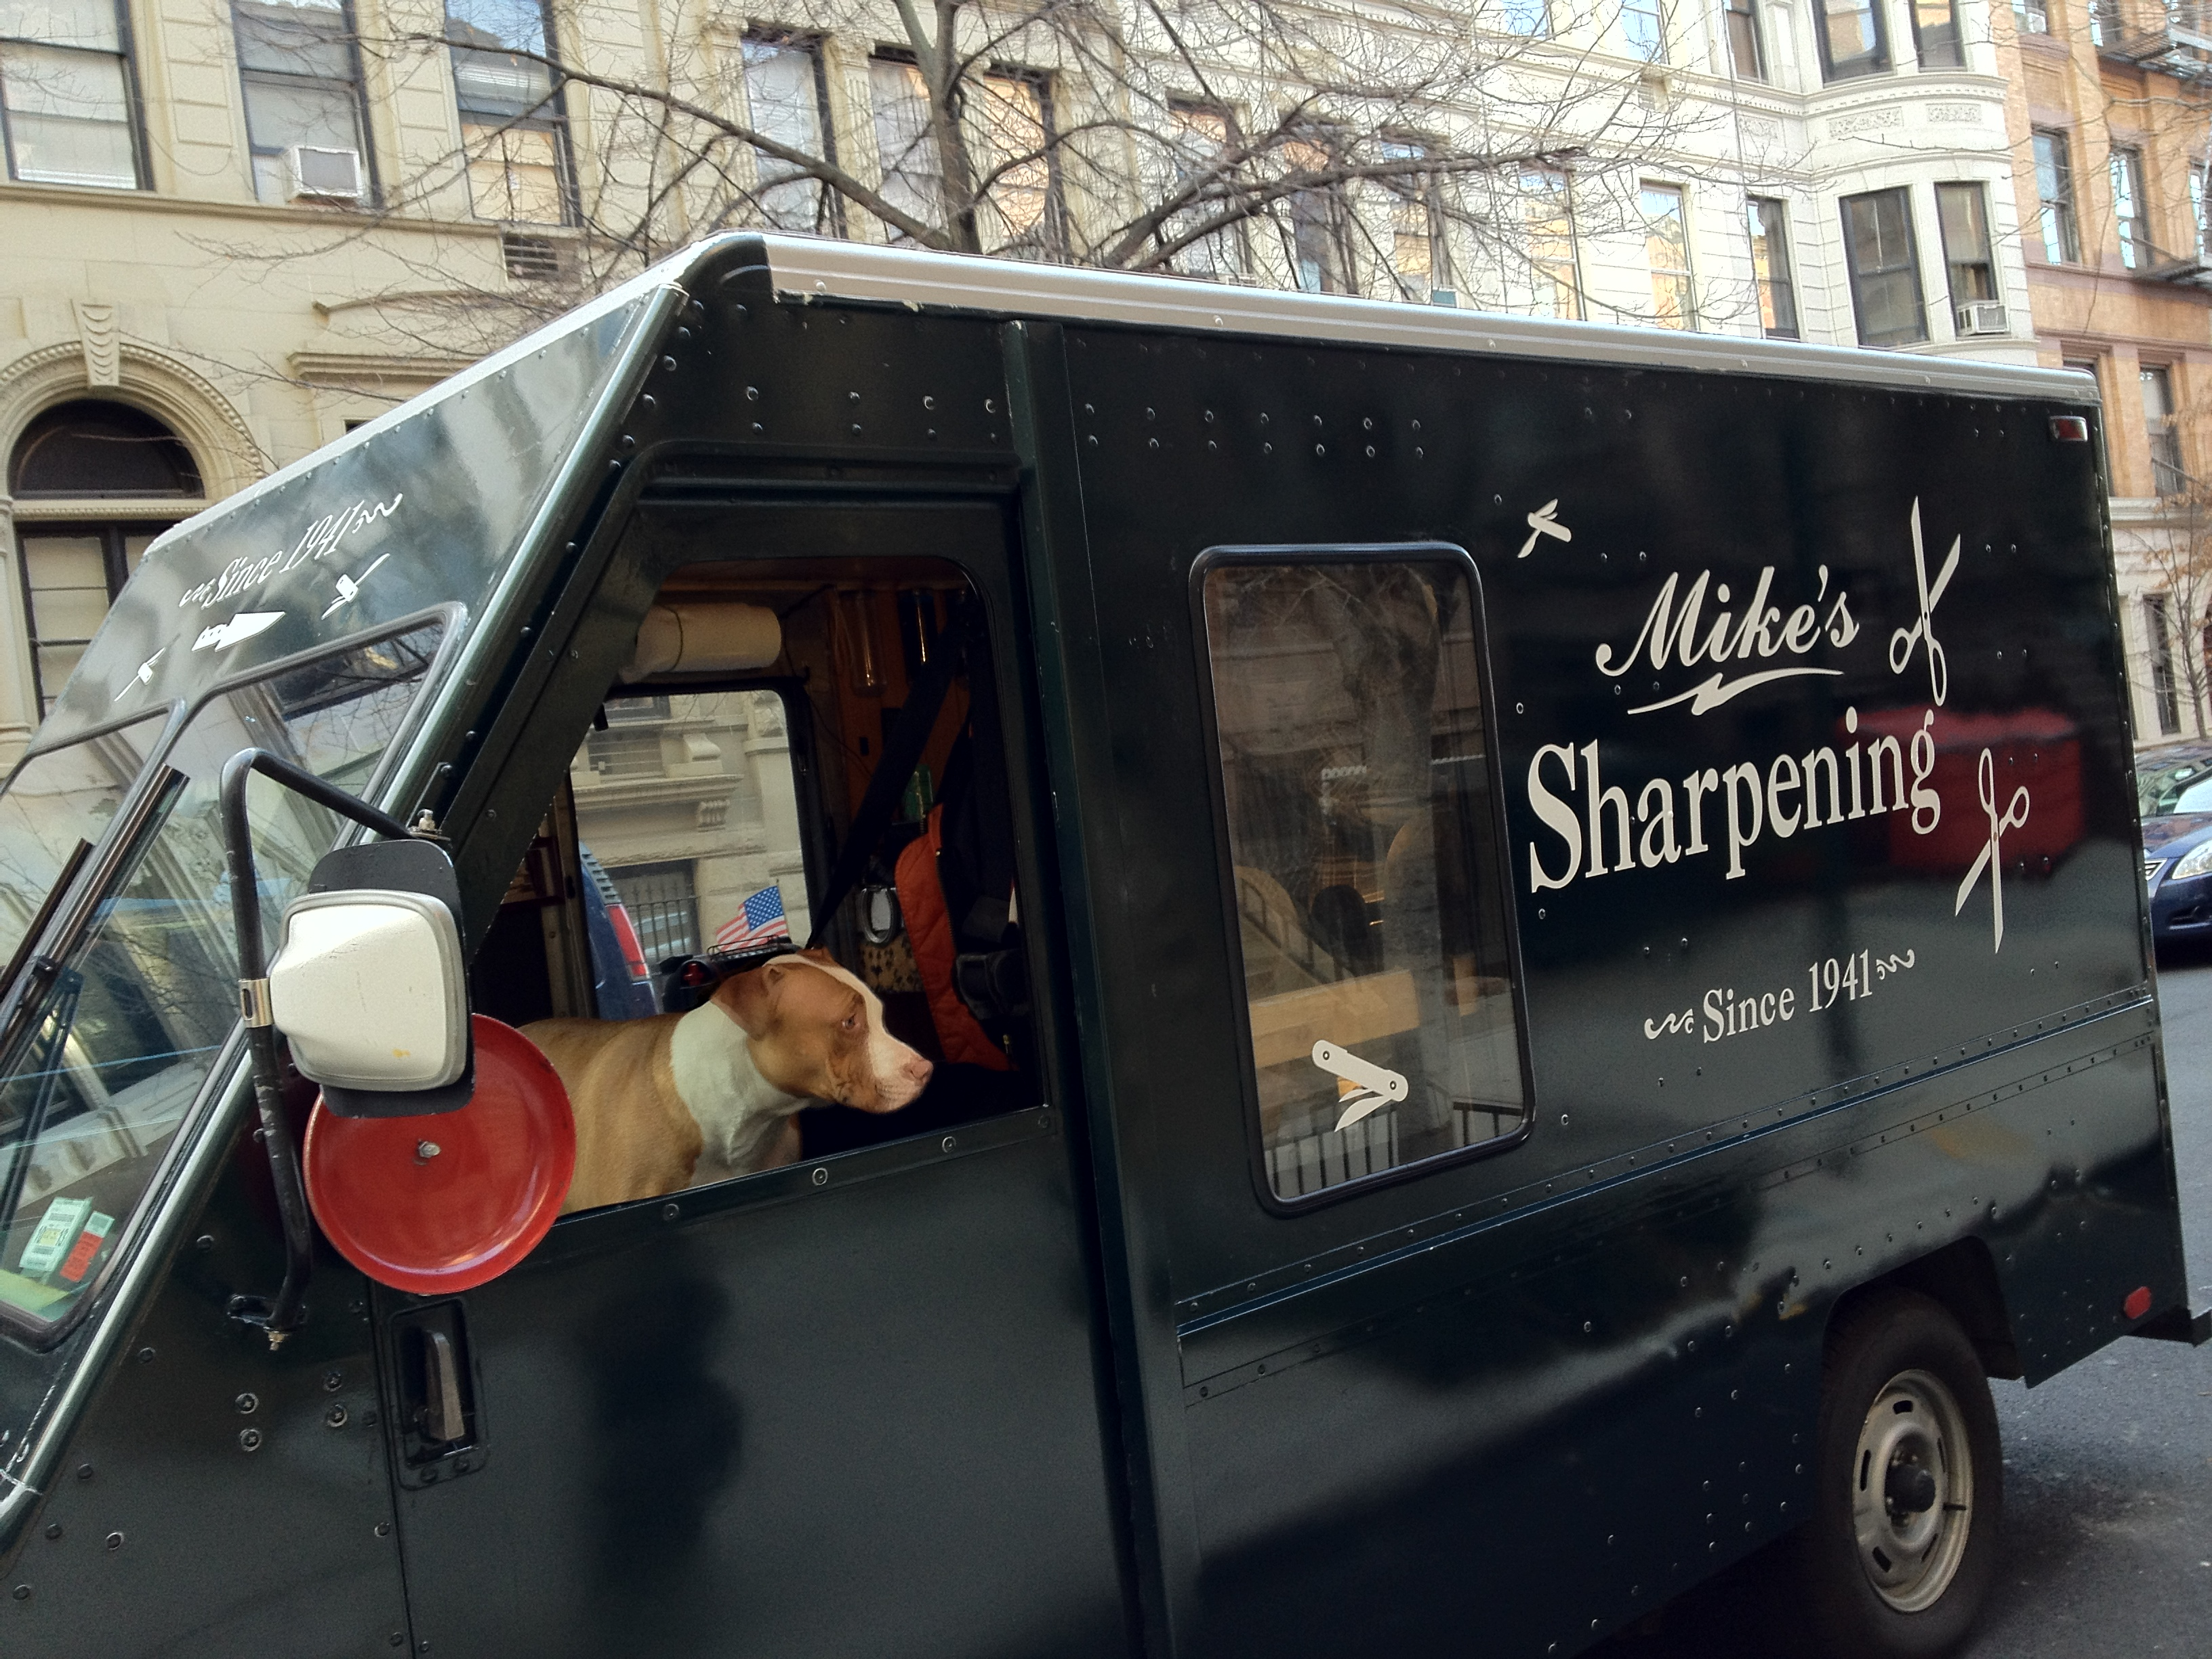 Inside our mobile sharpening shop - Mike S Knife Sharpening Truck Rolls City Style